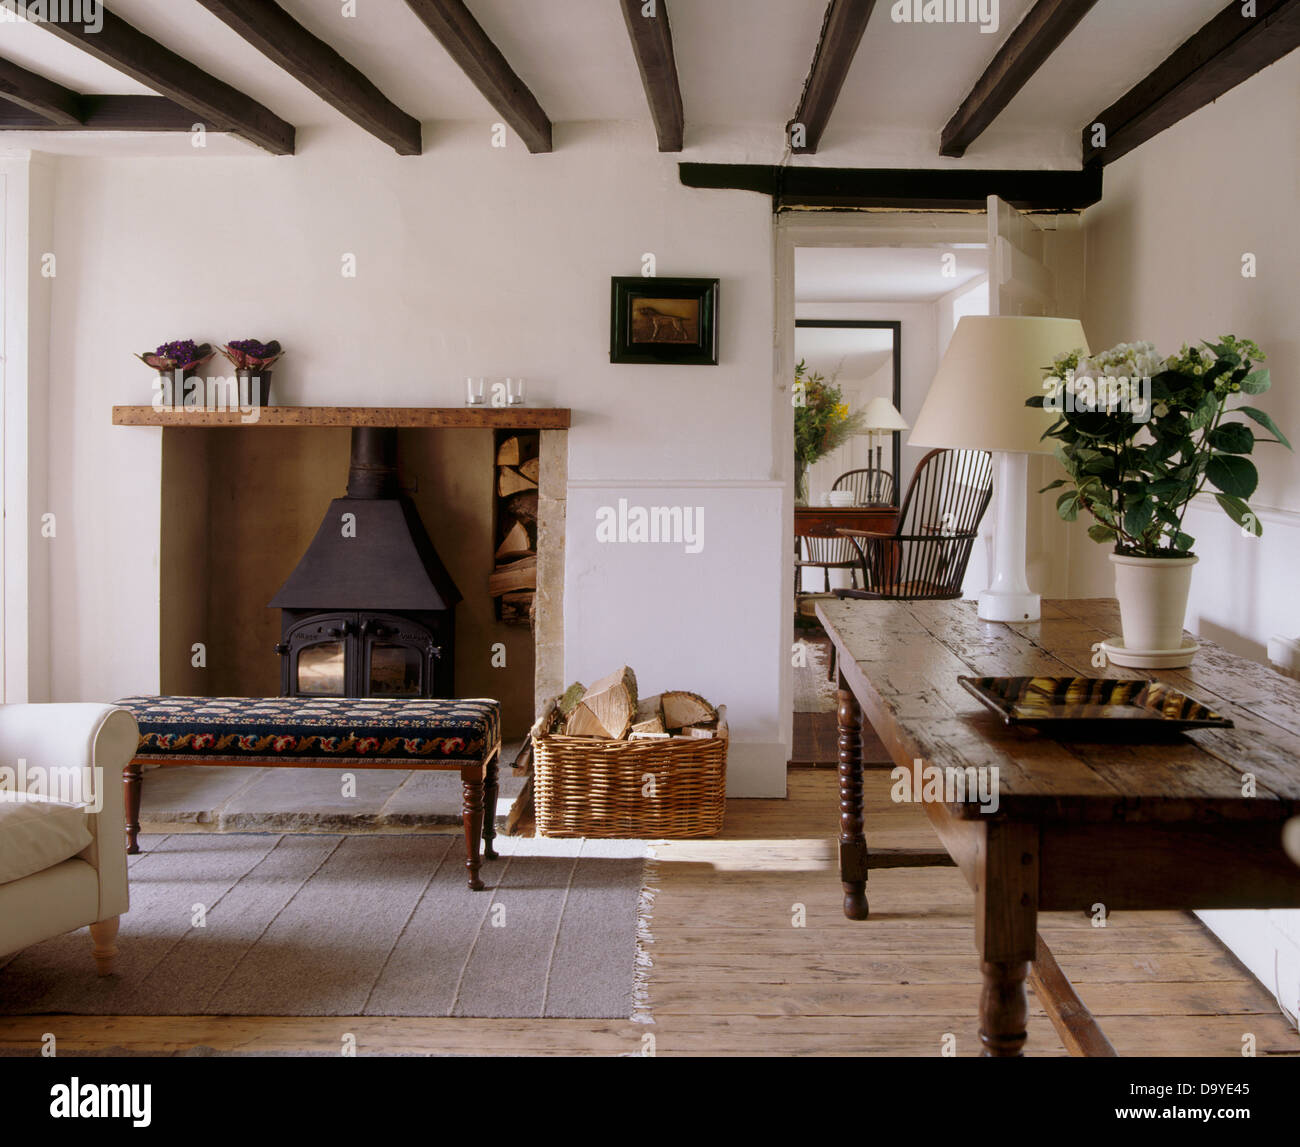 Old Oak Table And Wooden Floor In White Cottage Living Room With  Upholstered Stool In Front Of Fireplace With Wood Burning Stove